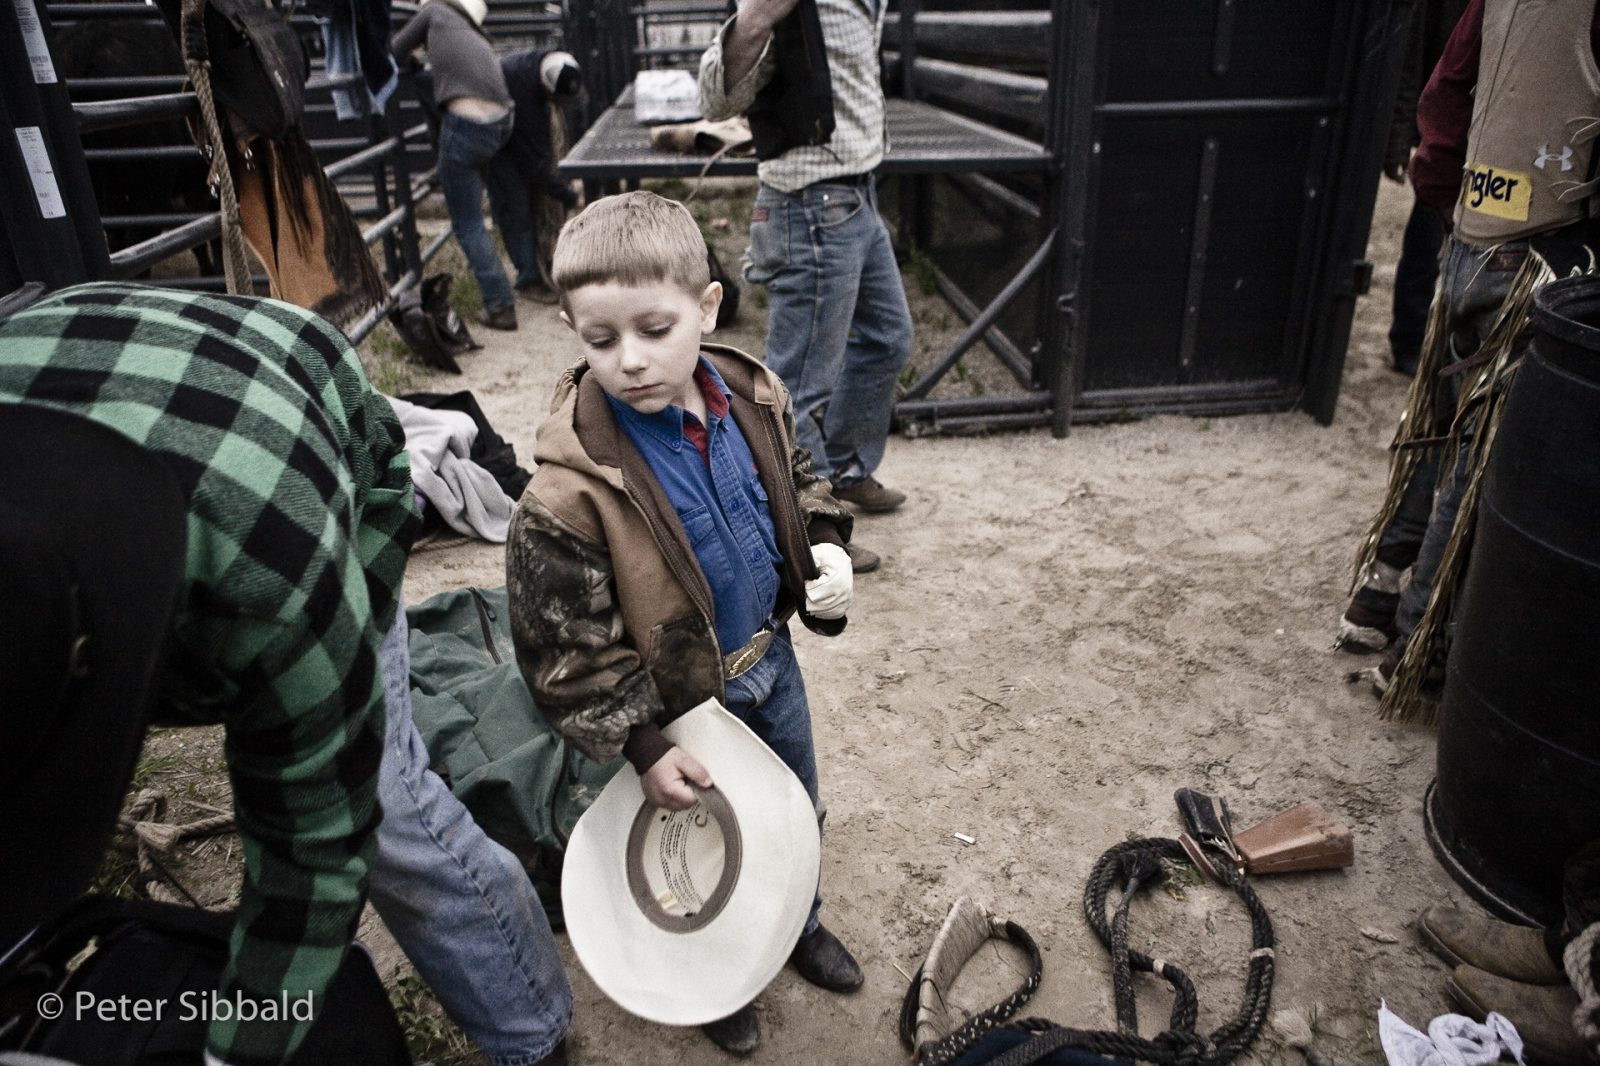 Art and Documentary Photography - Loading 021-rodeo_bullclinic20090515-16_0152-6480pxToPrint.jpg